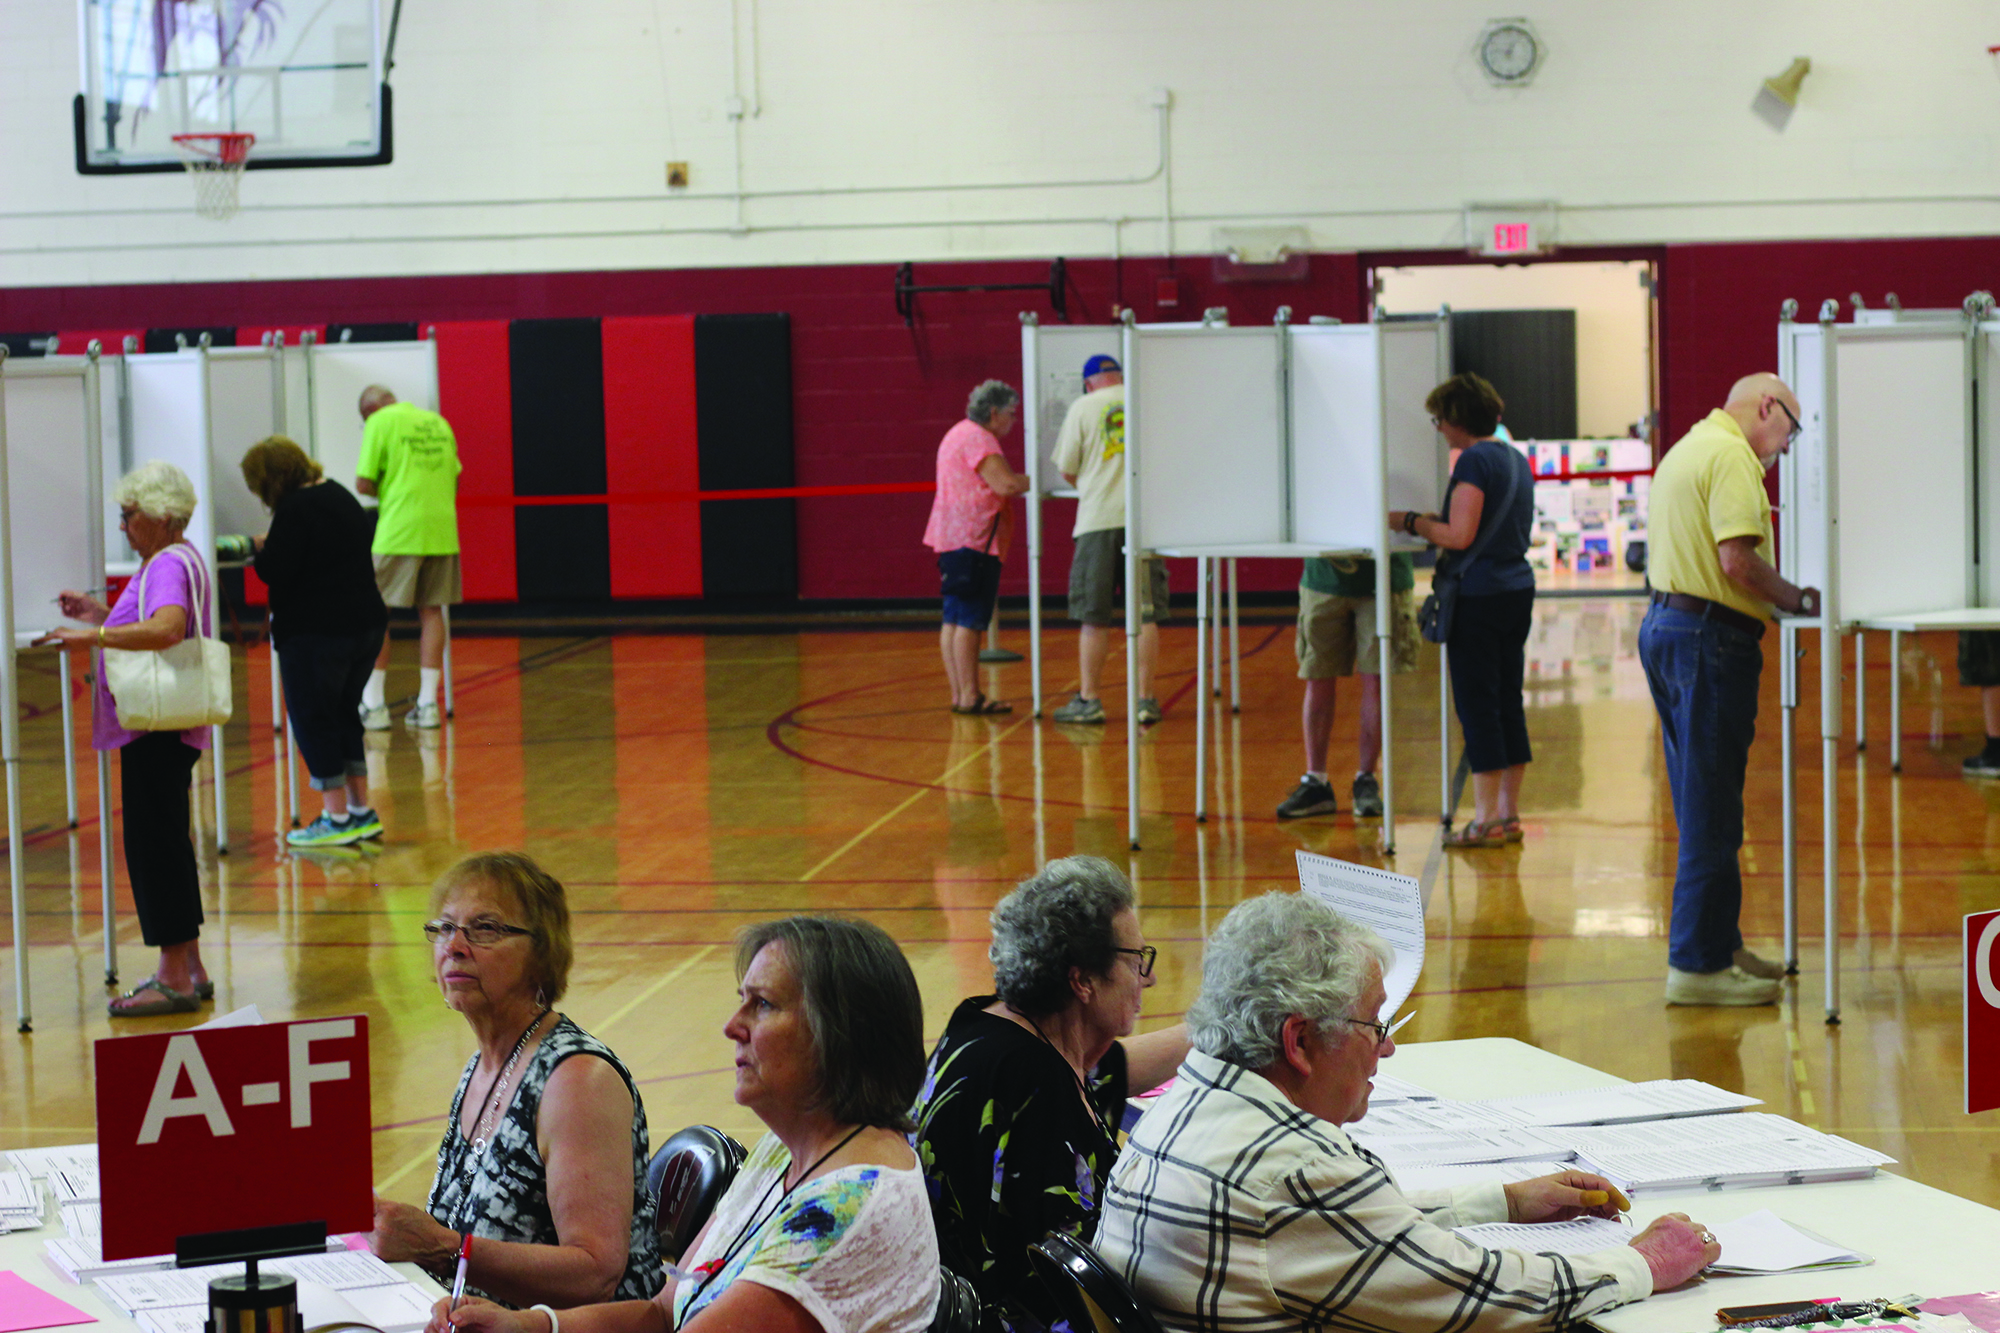 Wells residents mark down their votes in voting booths at the Wells Junior High School gymnasium on Tuesday afternoon. The town ballot carried significant questions this year, such as a multimillion dollar bond question over the creation of new public safety complexes. RYDER SCHUMACHER/Journal Tribune